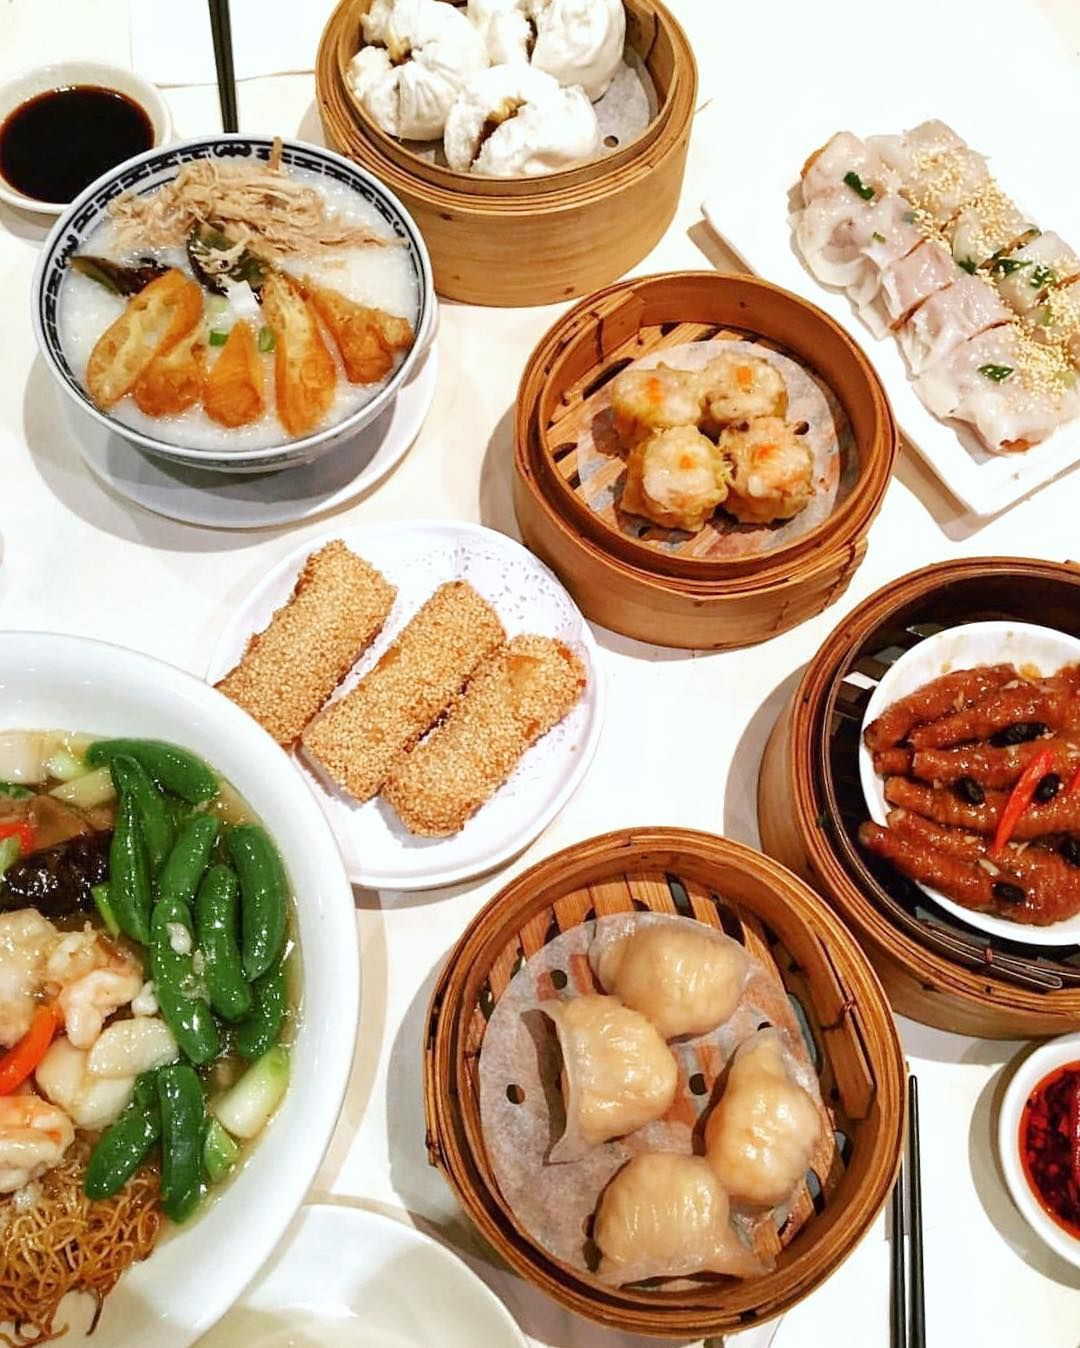 Best Chinese Restaurant In London London S Chinese Restaurant Scene Is Diverse Ranging Fro Chinese Restaurant Best Chinese Restaurant Chinese Dishes Recipes